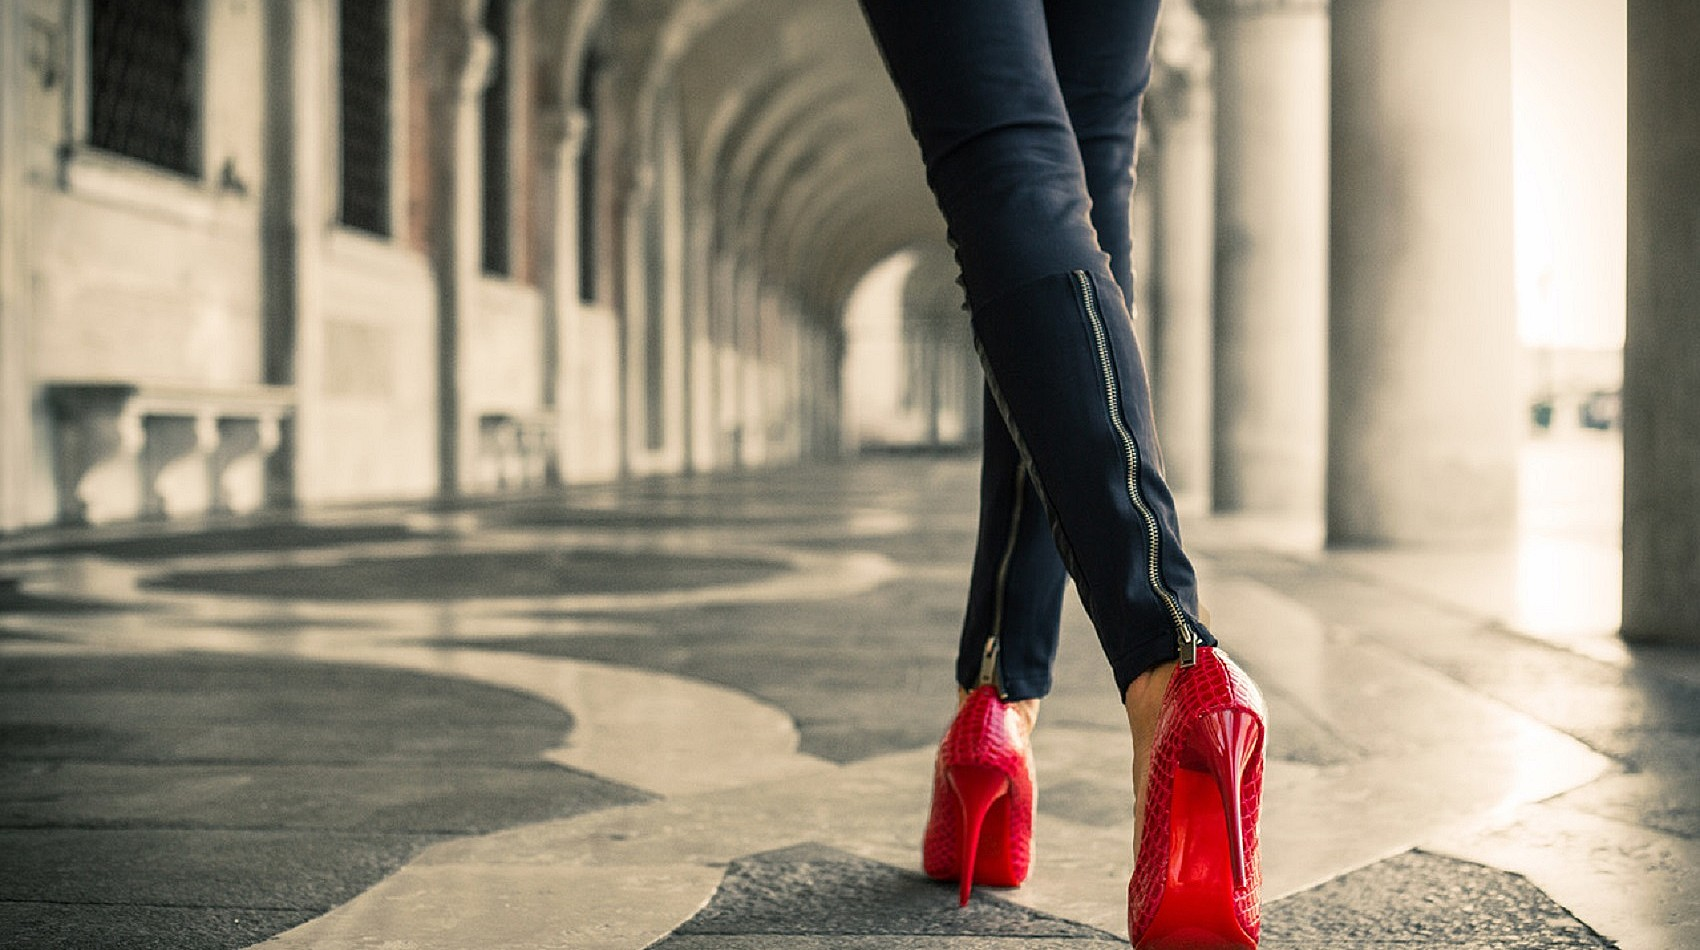 When the nerves kick in. How wearing red shoes helped my nerves!